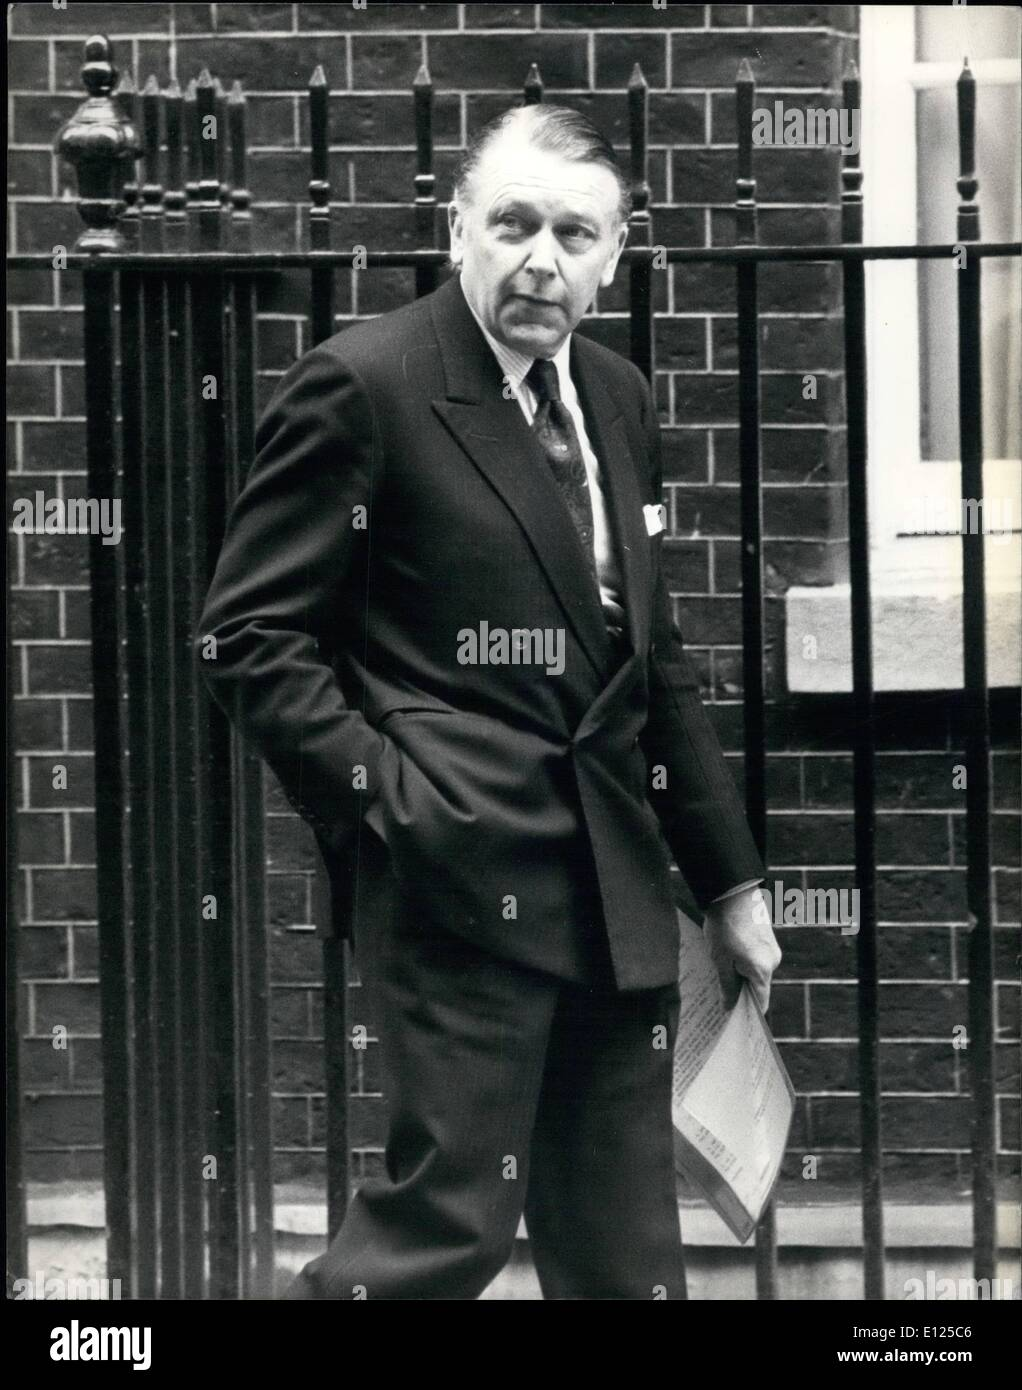 May 05, 1992 - Crisis meeting at Downing Street.: Photo shows Foreign Secretary Francis Pymn arrives at No.10 Downing - Stock Image